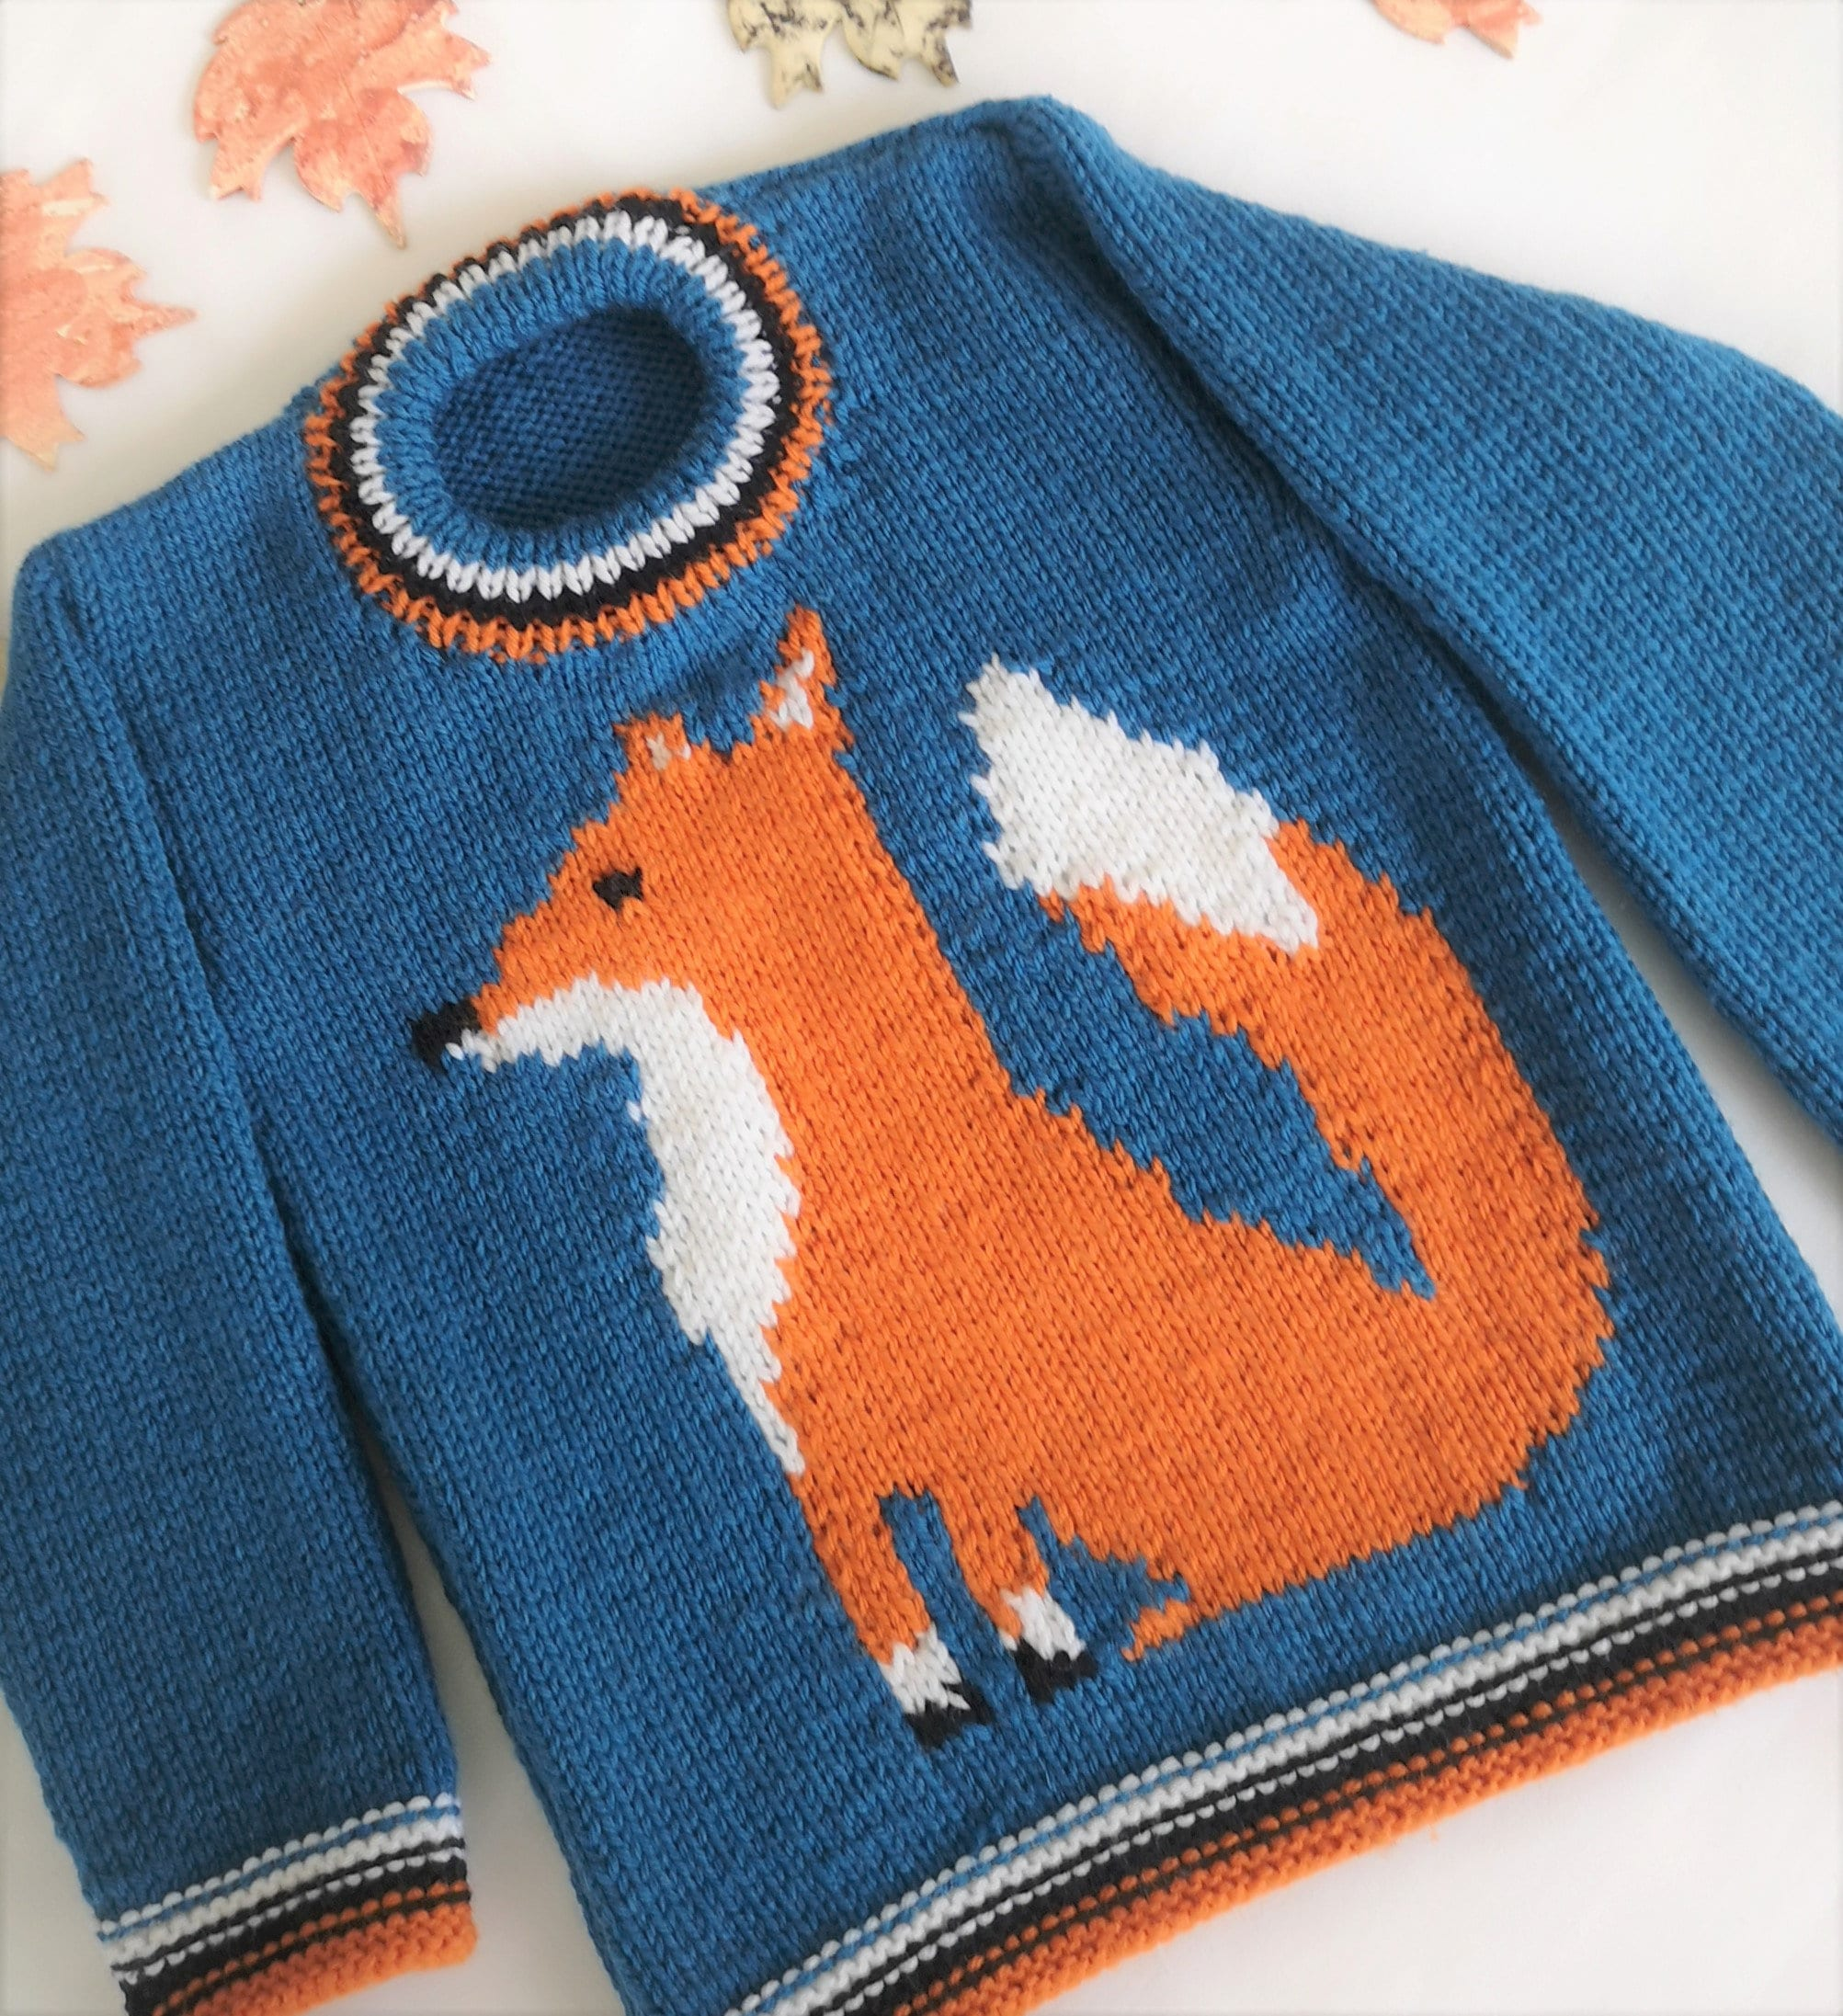 Knitting Pattern for Sweater with a Fox, Fox Jumper ...